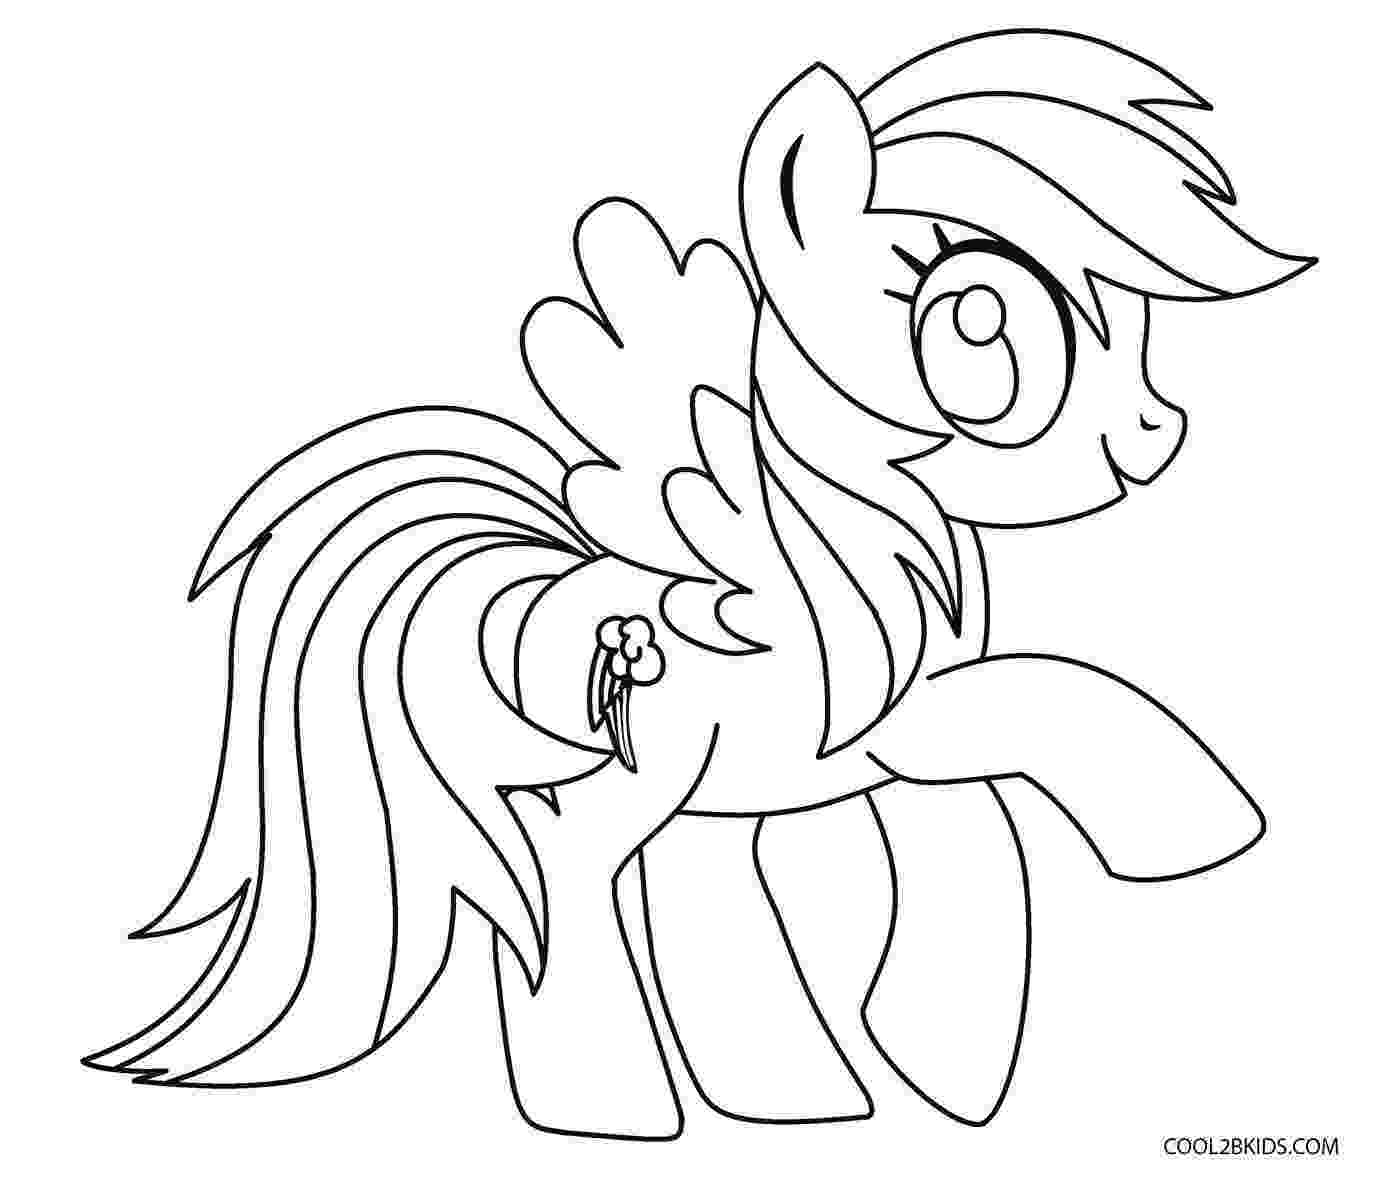 rainbow dash coloring free printable my little pony coloring pages for kids rainbow coloring dash